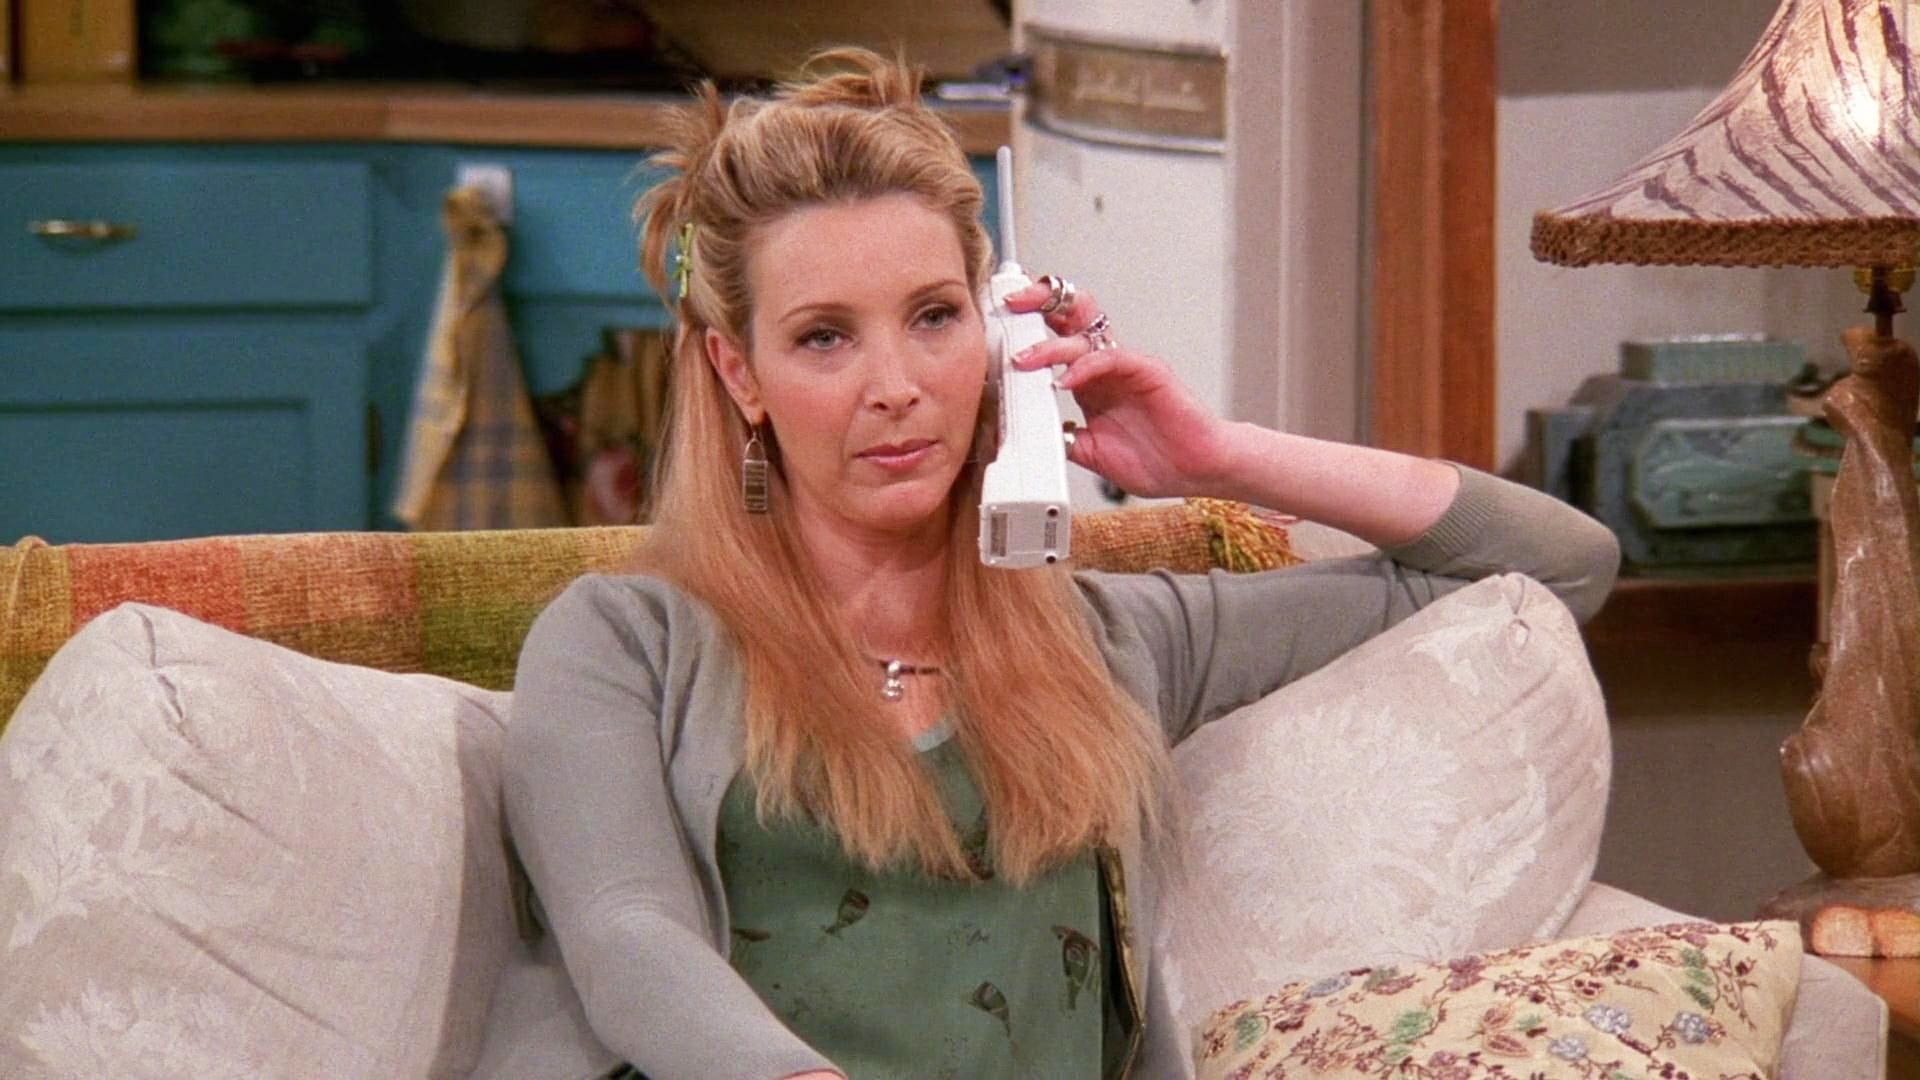 Friends - Season 5 Episode 4 : The One Where Phoebe Hates PBS